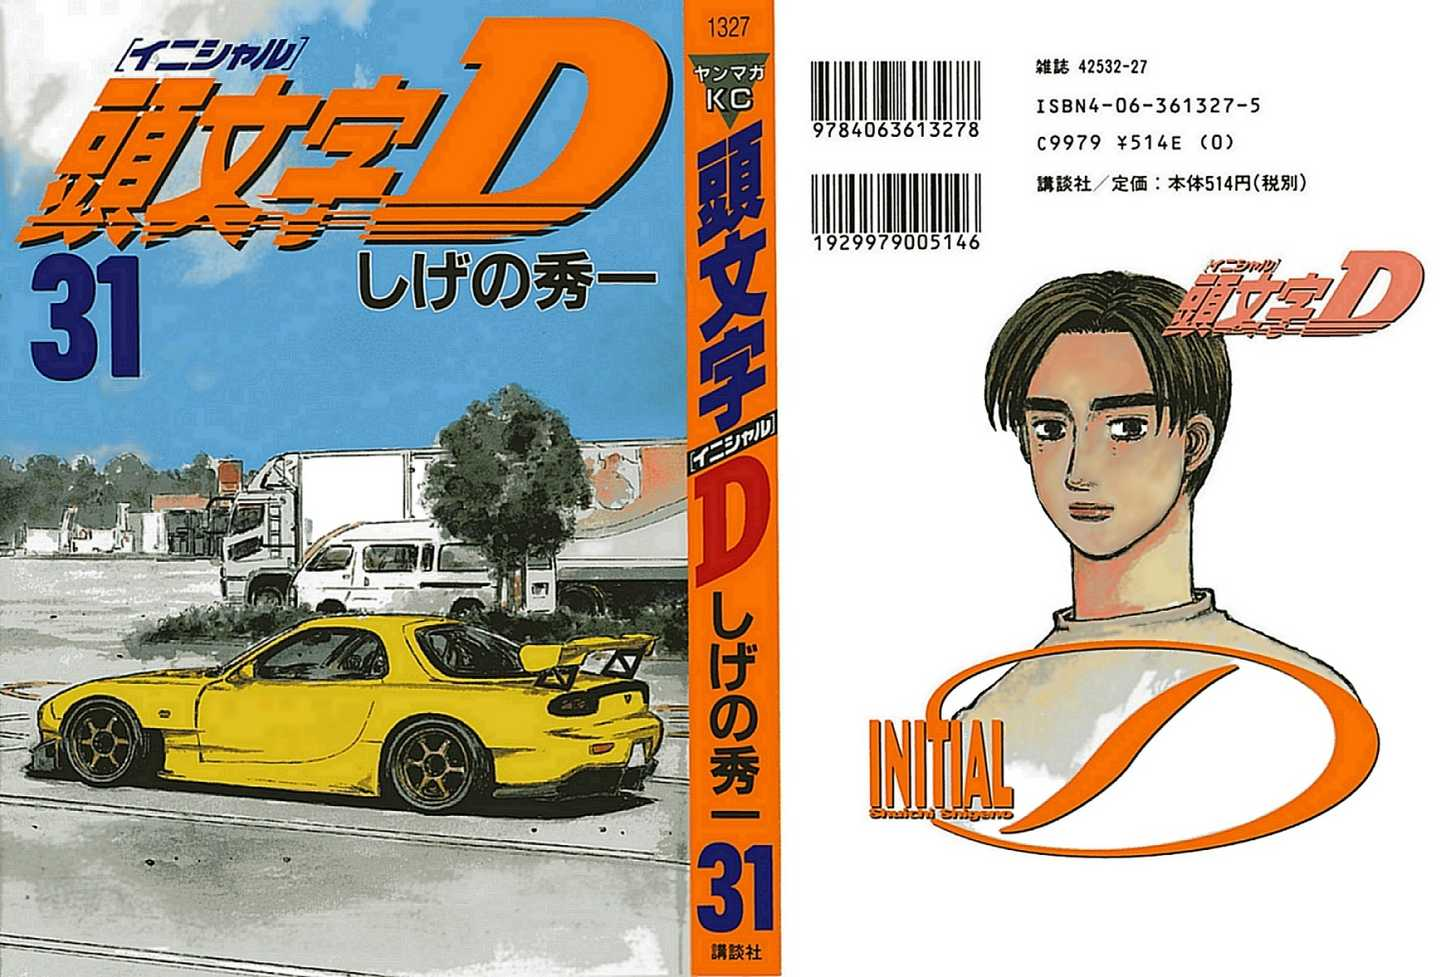 Initial D 405 Page 1